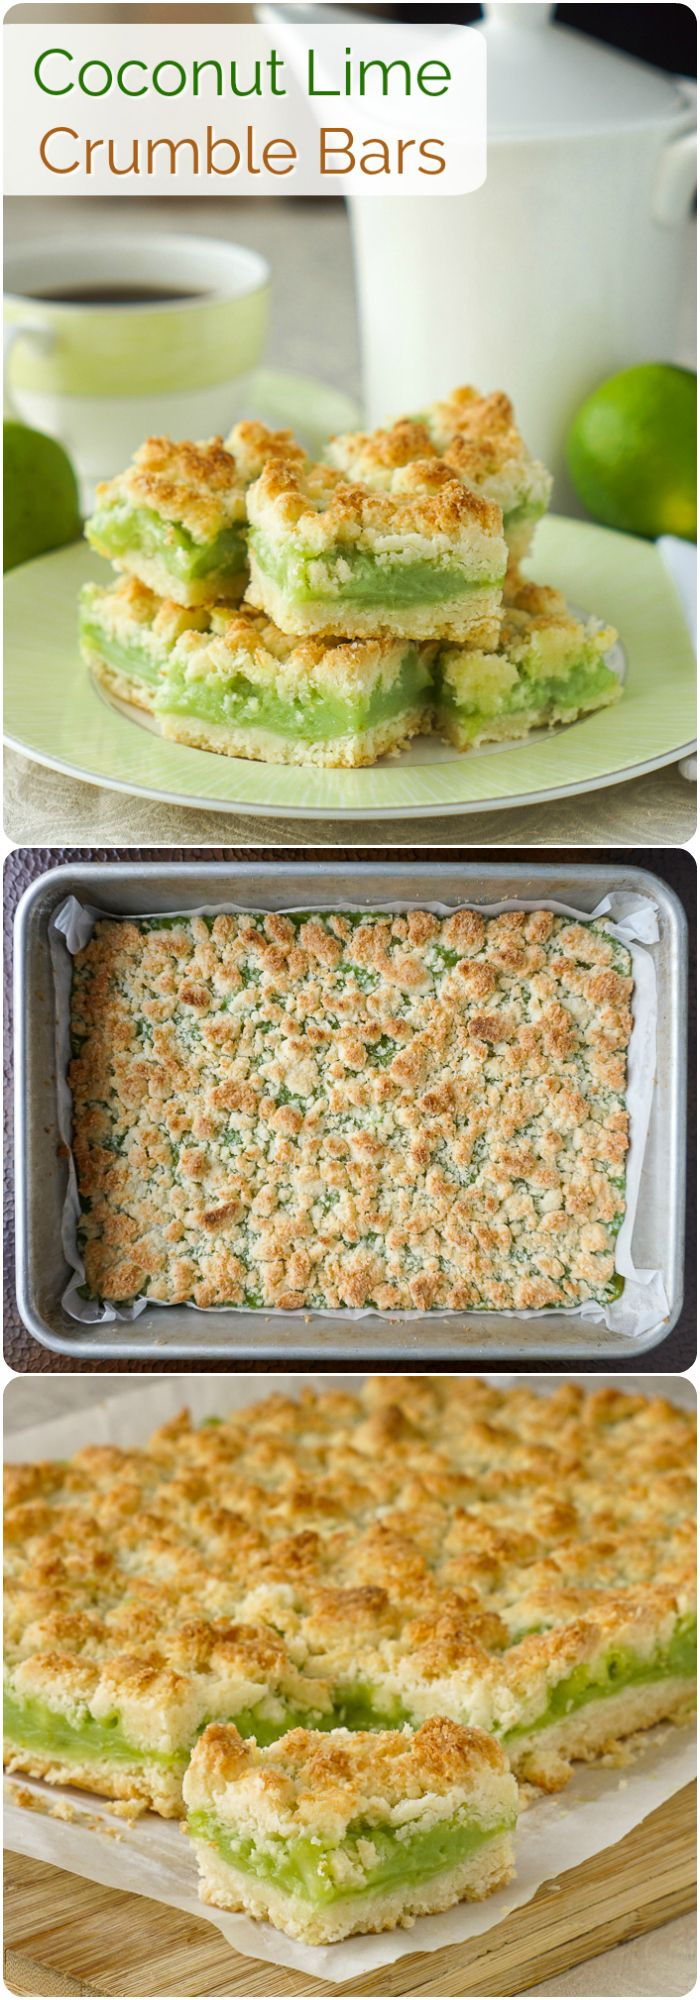 5356 best Photos from Rock Recipes images on Pinterest ...